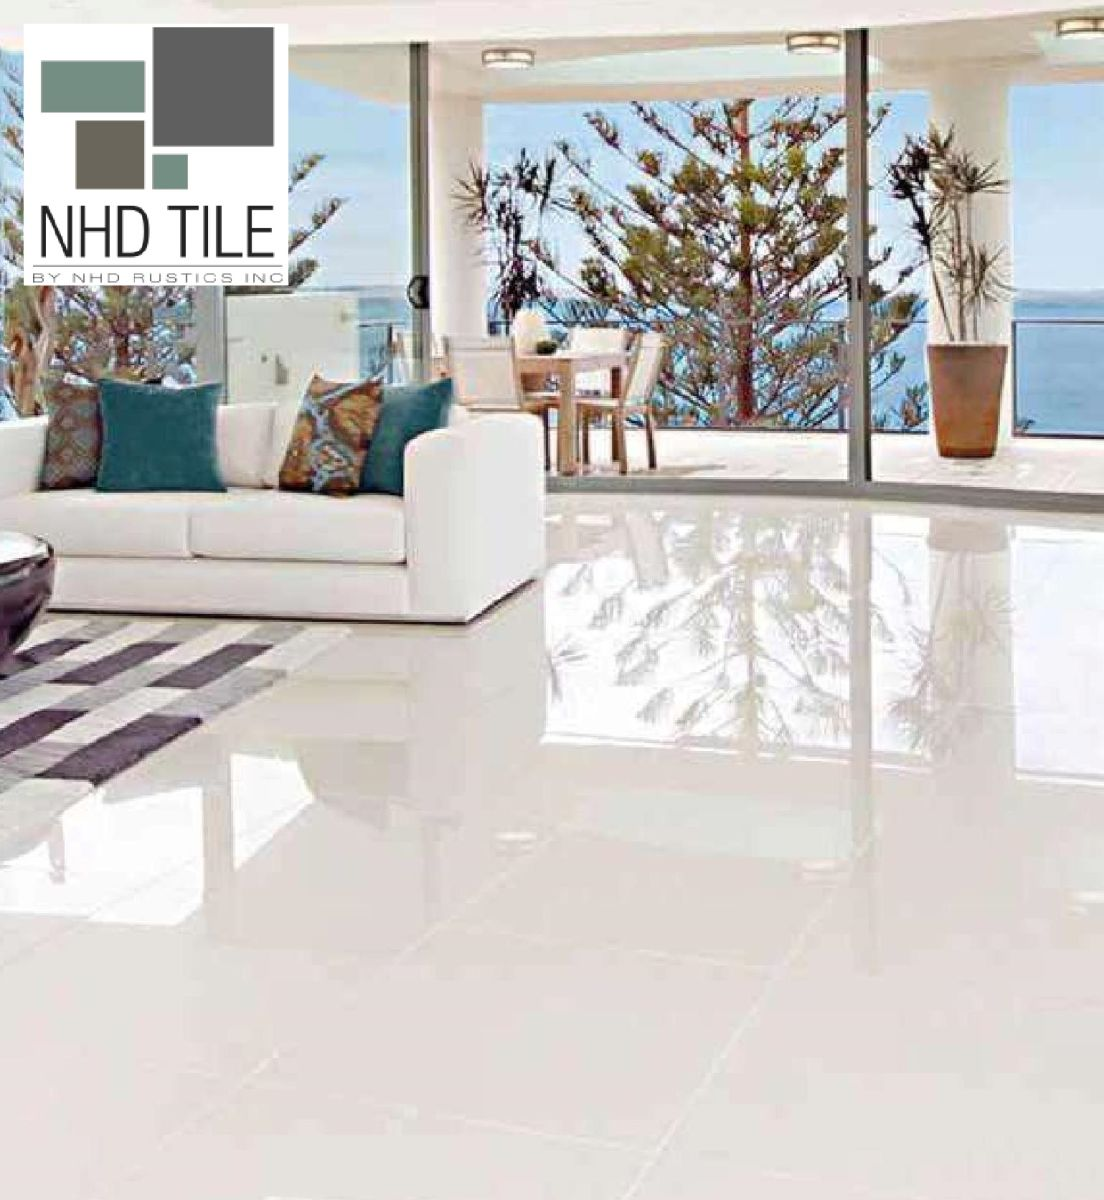 Details about Glazed Polished Porcelain Tile 32x32 Iceberg Alpine White Rectified Marble Look